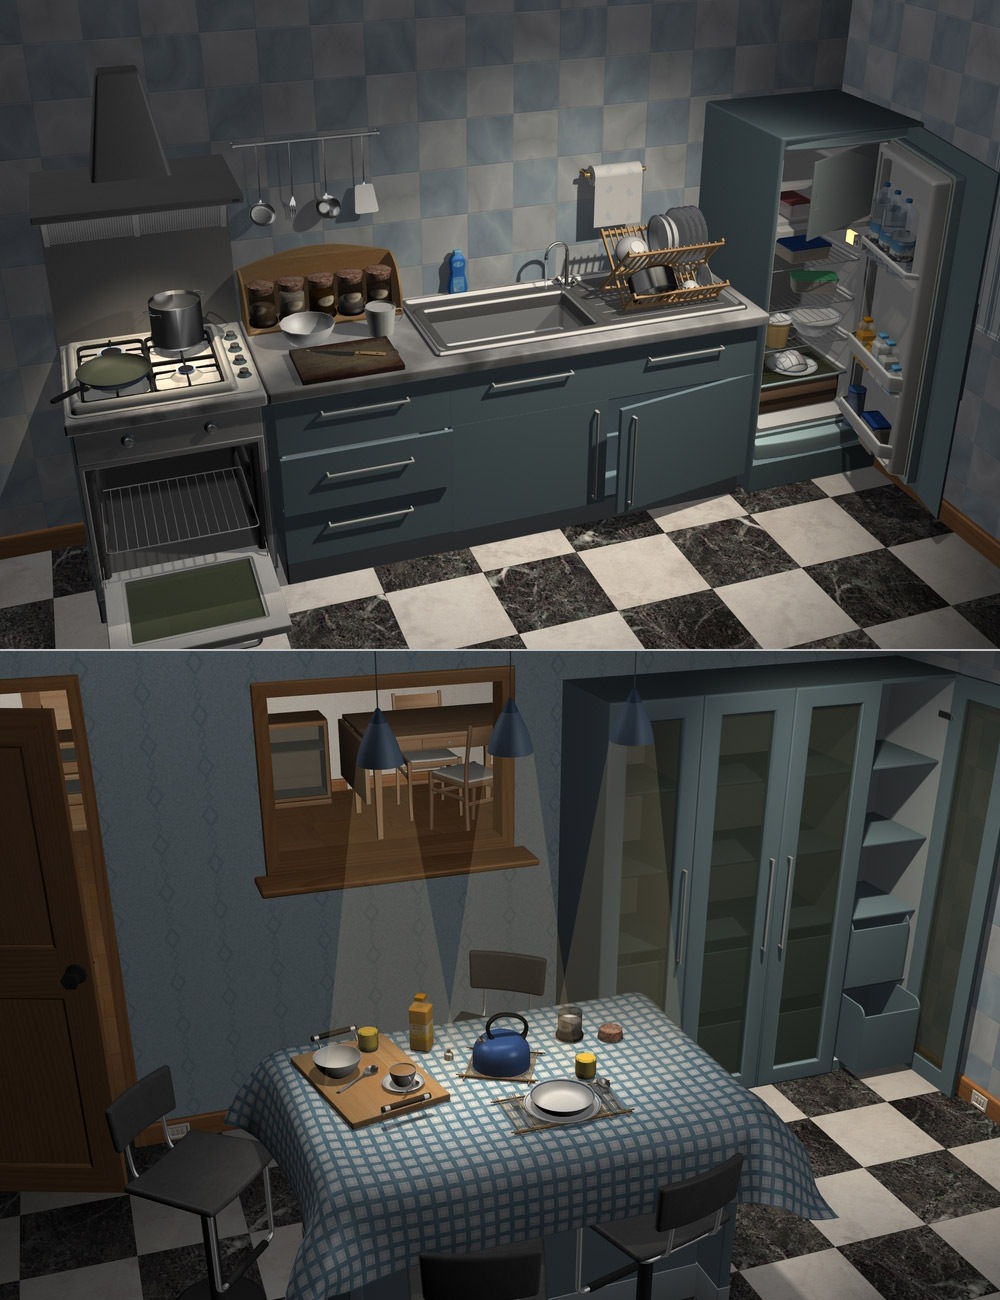 Home One Kitchen by: maclean, 3D Models by Daz 3D